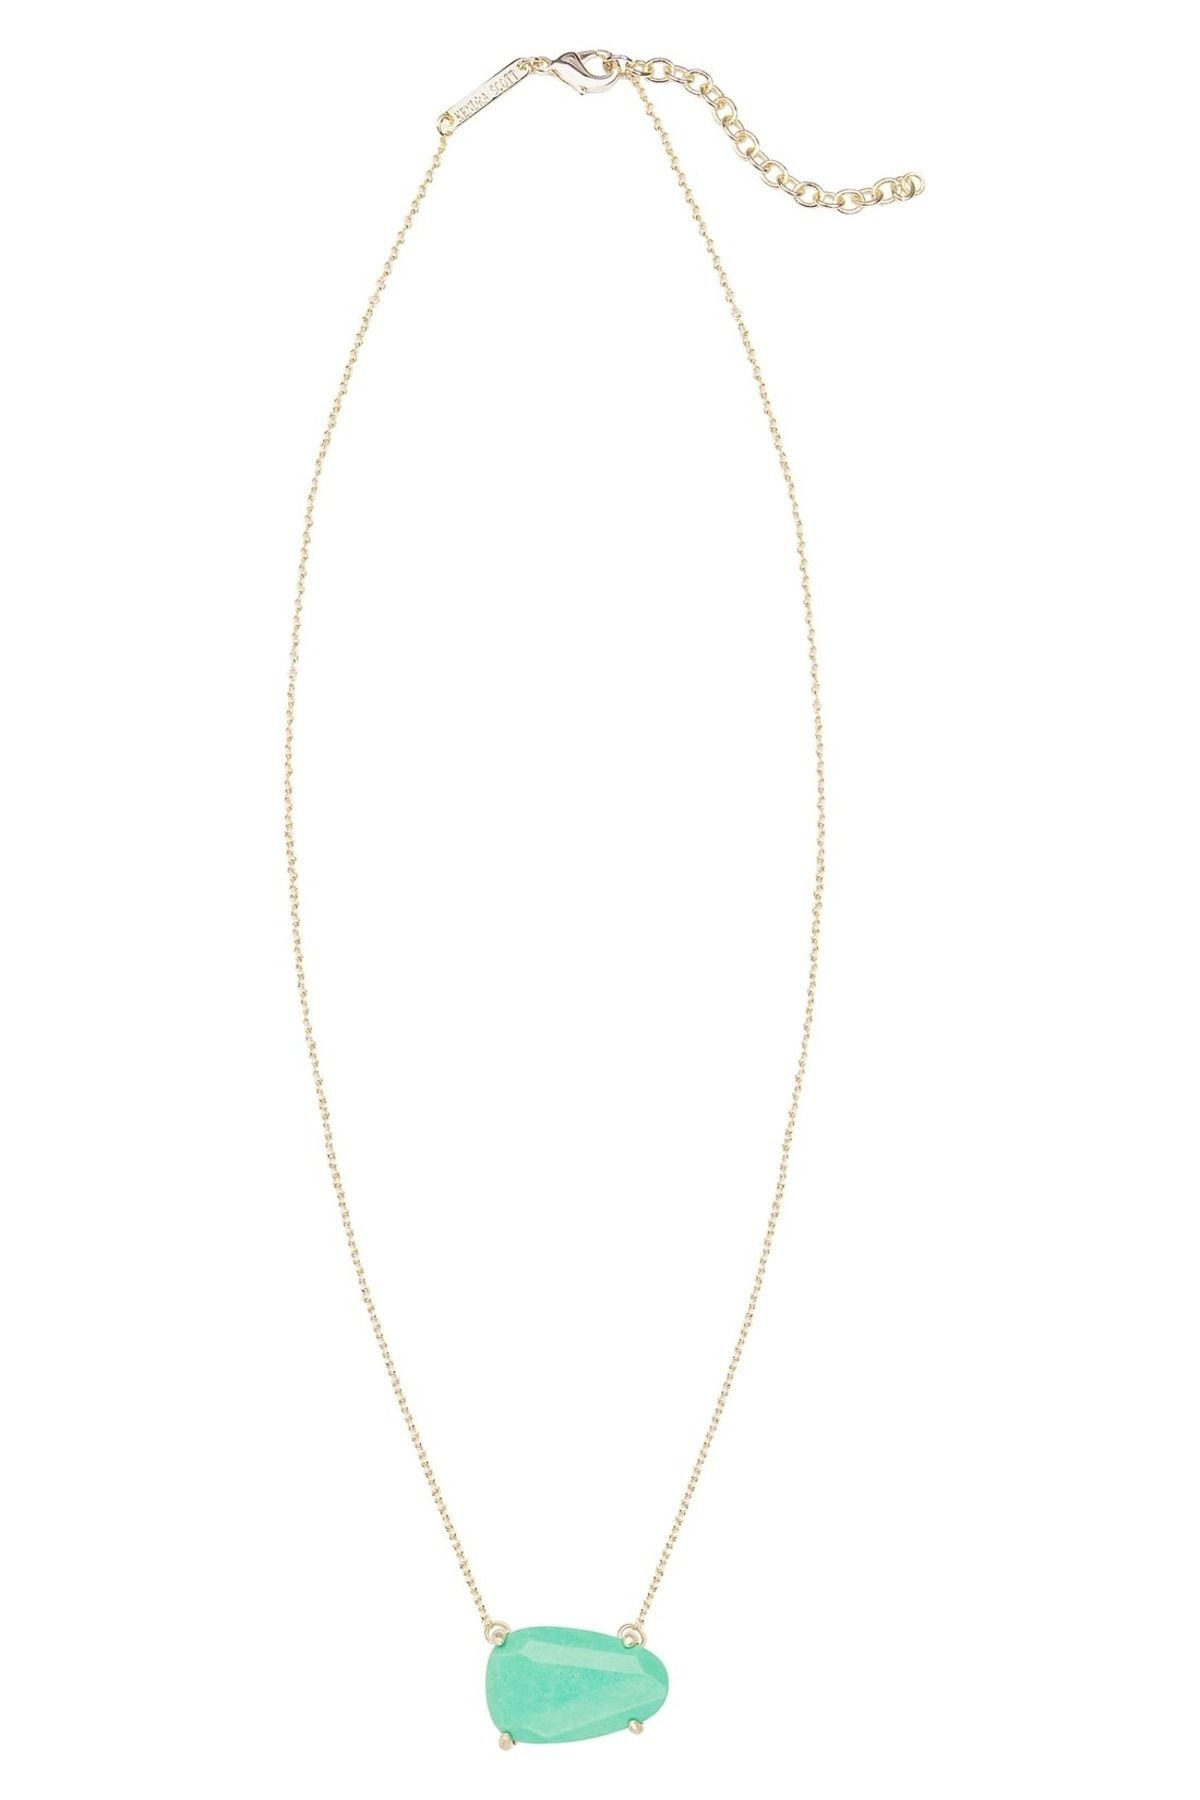 523936e62 Kendra Scott 'isla' Pendant Necklace, KS Jewelry Bag, Gold and Mint Green.  Get the lowest price on NEW! Kendra Scott 'isla' Pendant Necklace, KS  Jewelry Bag ...